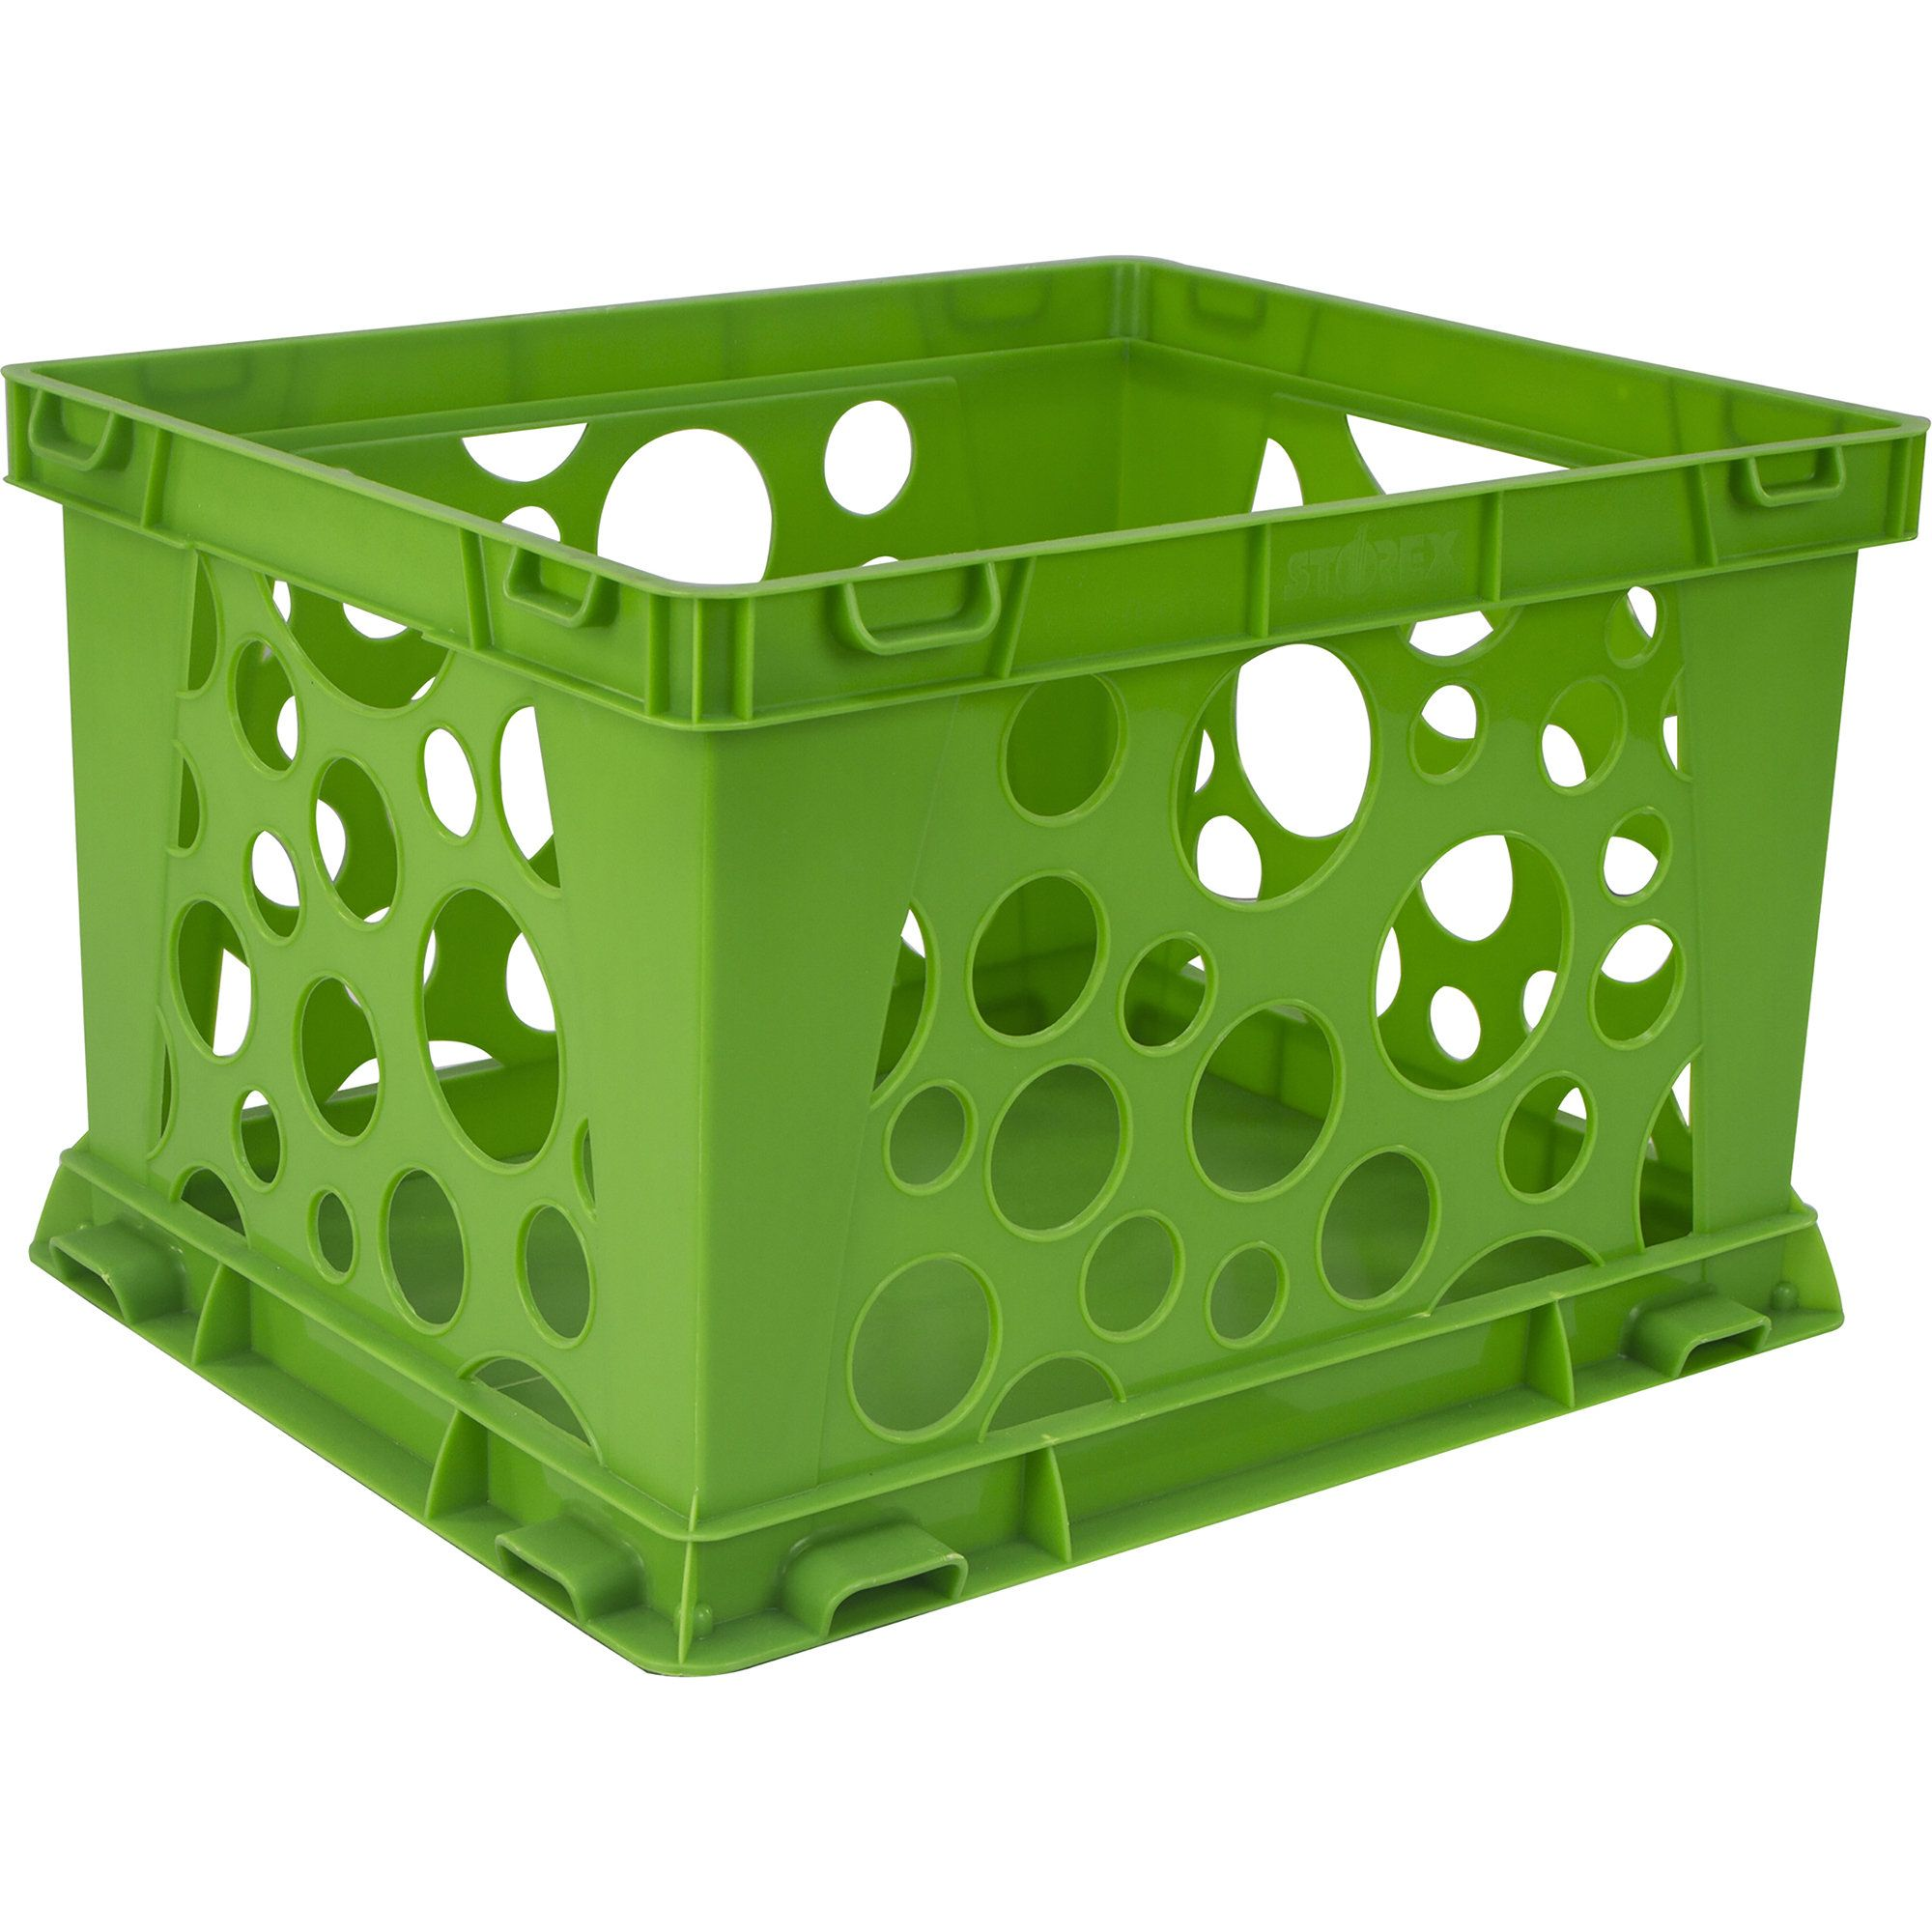 tubs storage container organizing tub blog plastic empower professional img drawer target